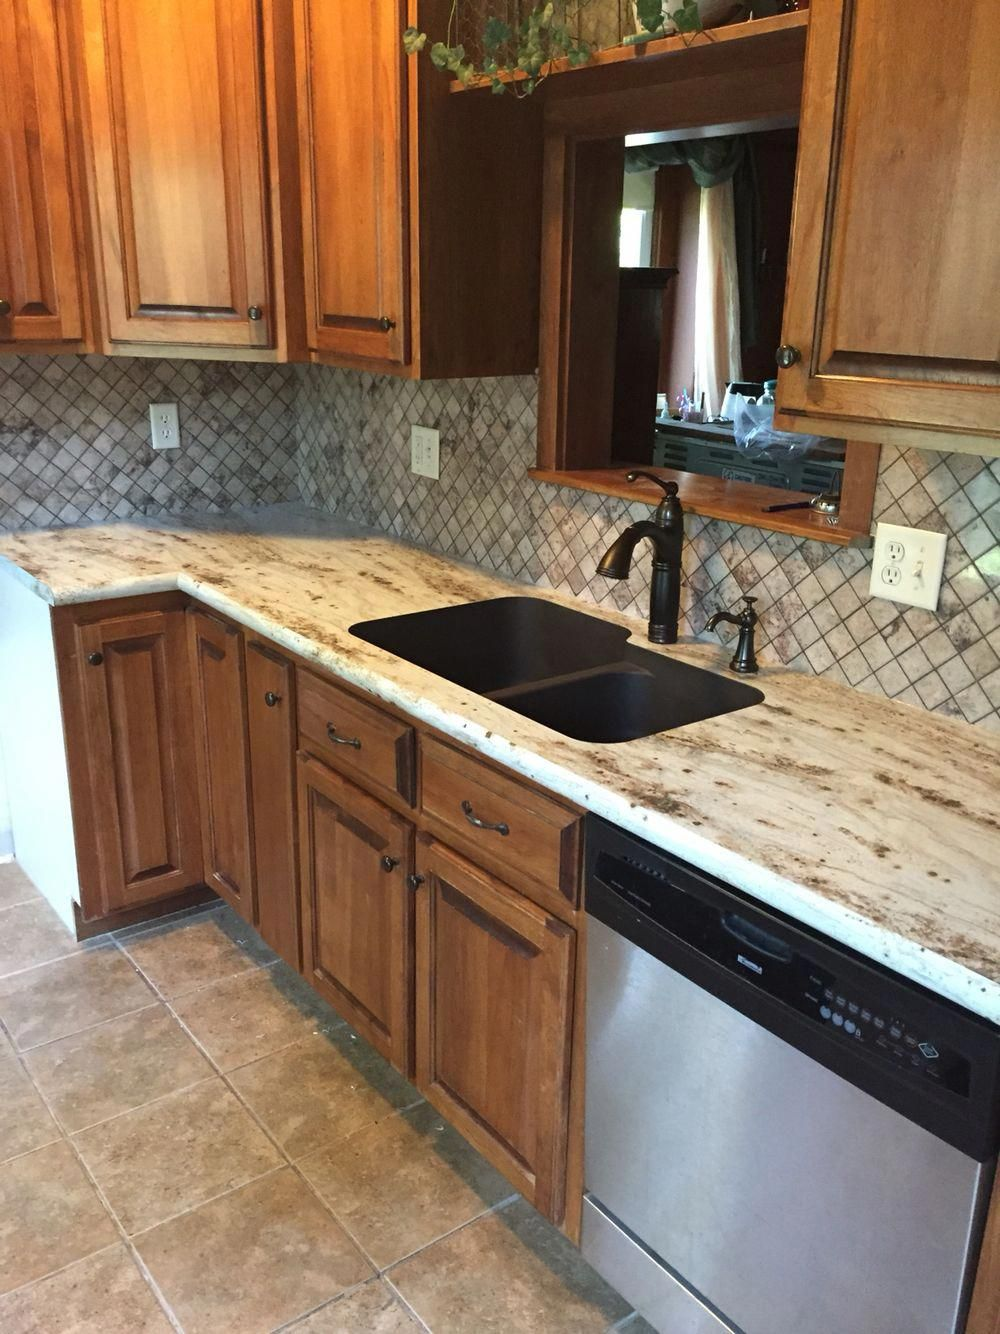 Exceptional Outdoor Kitchen Countertops Detail Is Readily Available On Our Site Outdoor Kitchen Countertops Formica Kitchen Countertops Kitchen Countertops